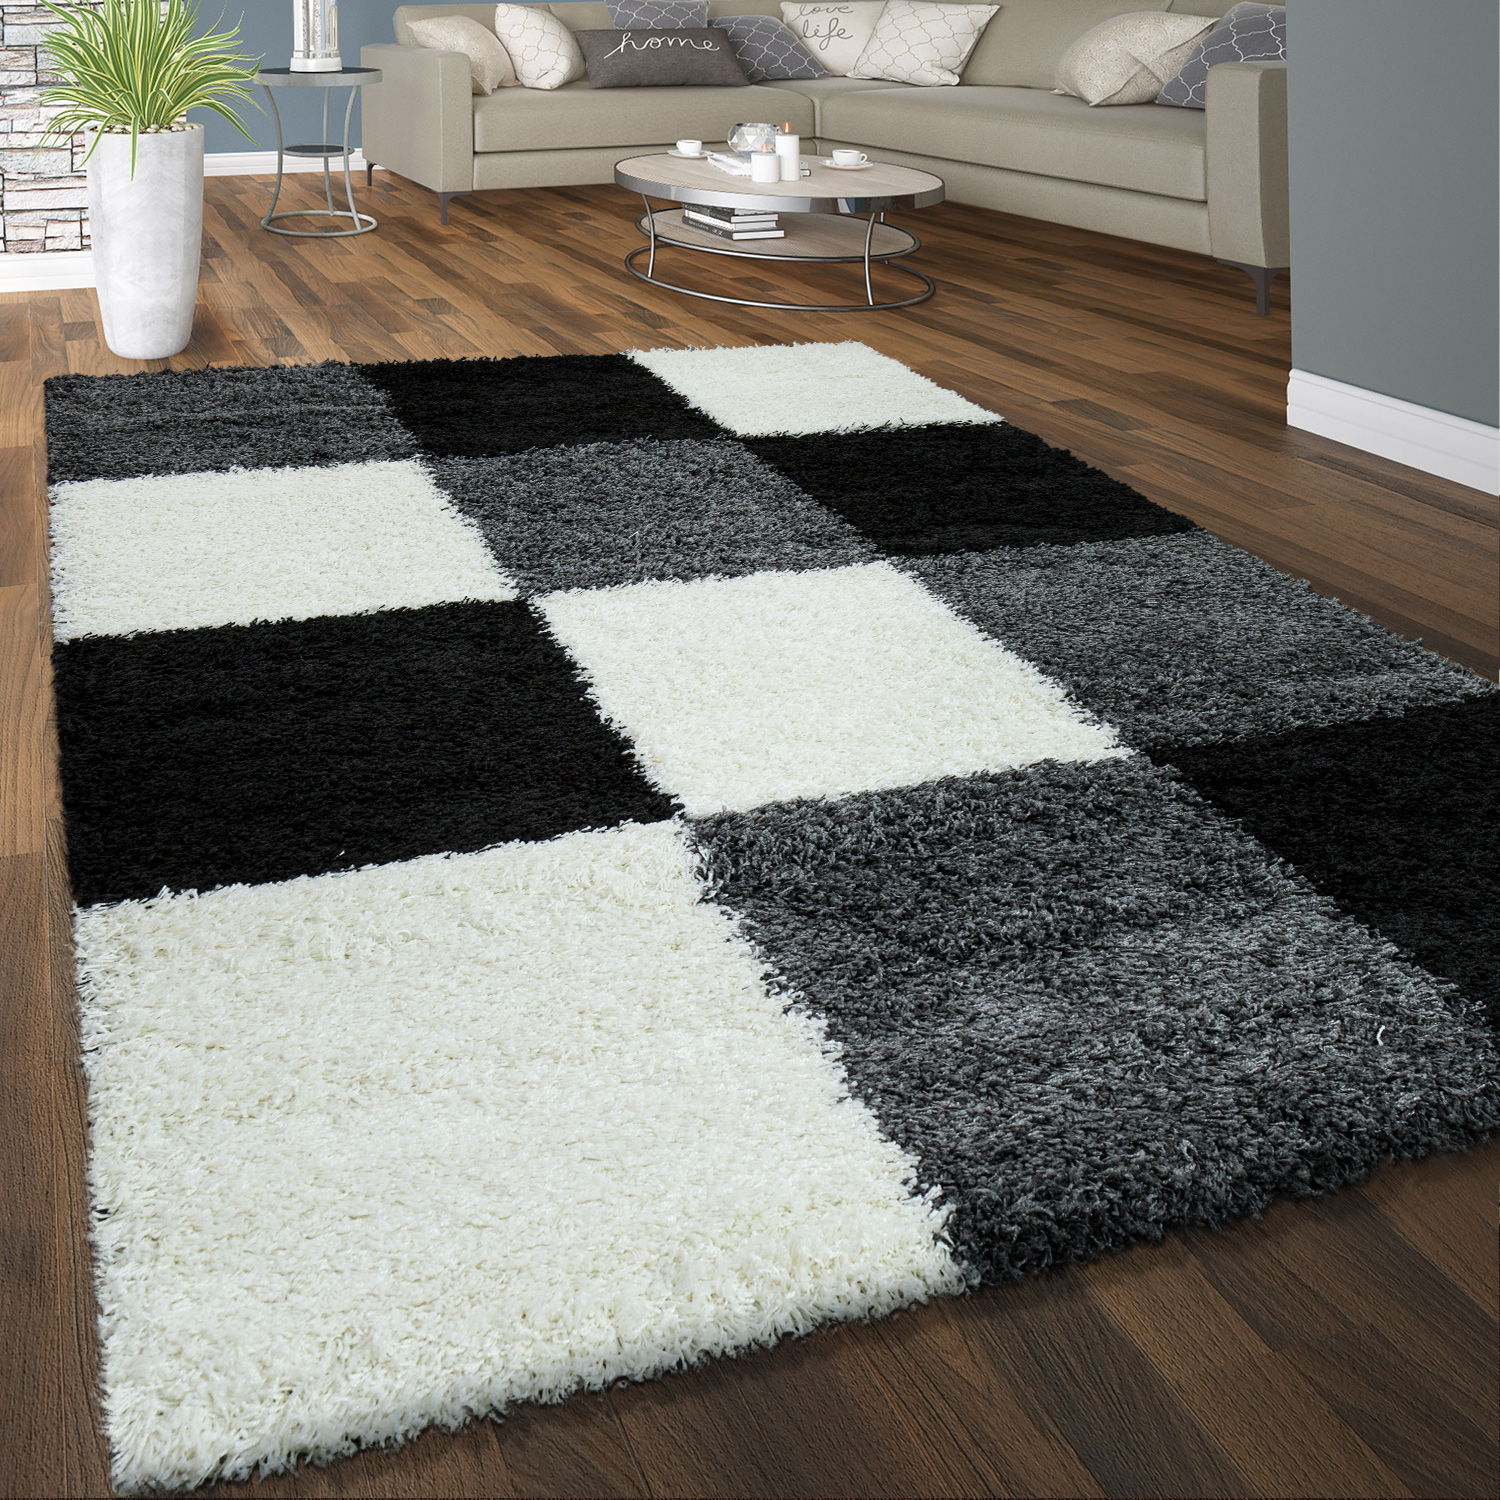 tapis shaggy poils hauts confortable doux poils longs carreaux motif gris noir blanc tapis tapis. Black Bedroom Furniture Sets. Home Design Ideas